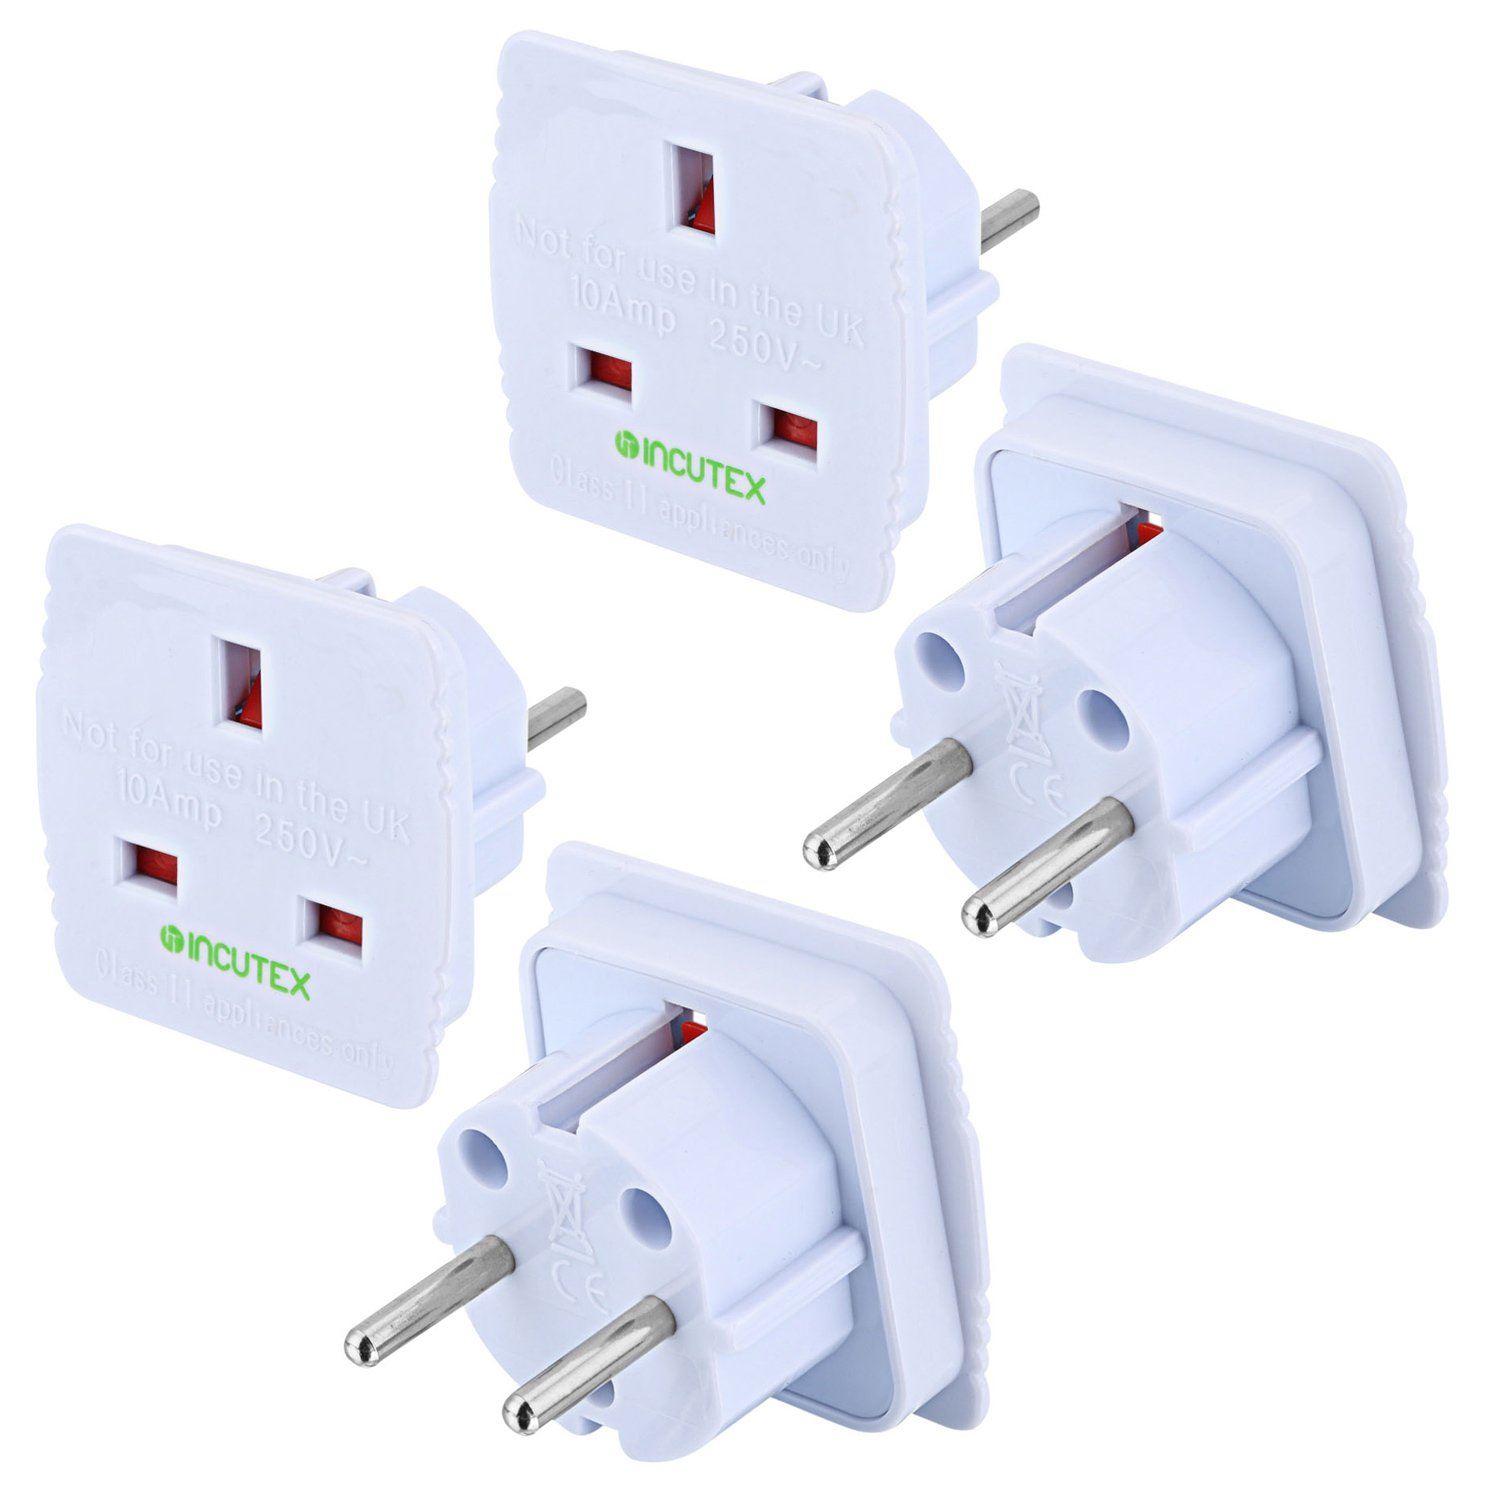 Adaptador Enchufe ingl/és a espa/ñol Incutex 2X Adaptador UK Espa/ña Adaptador UK EU Blanco